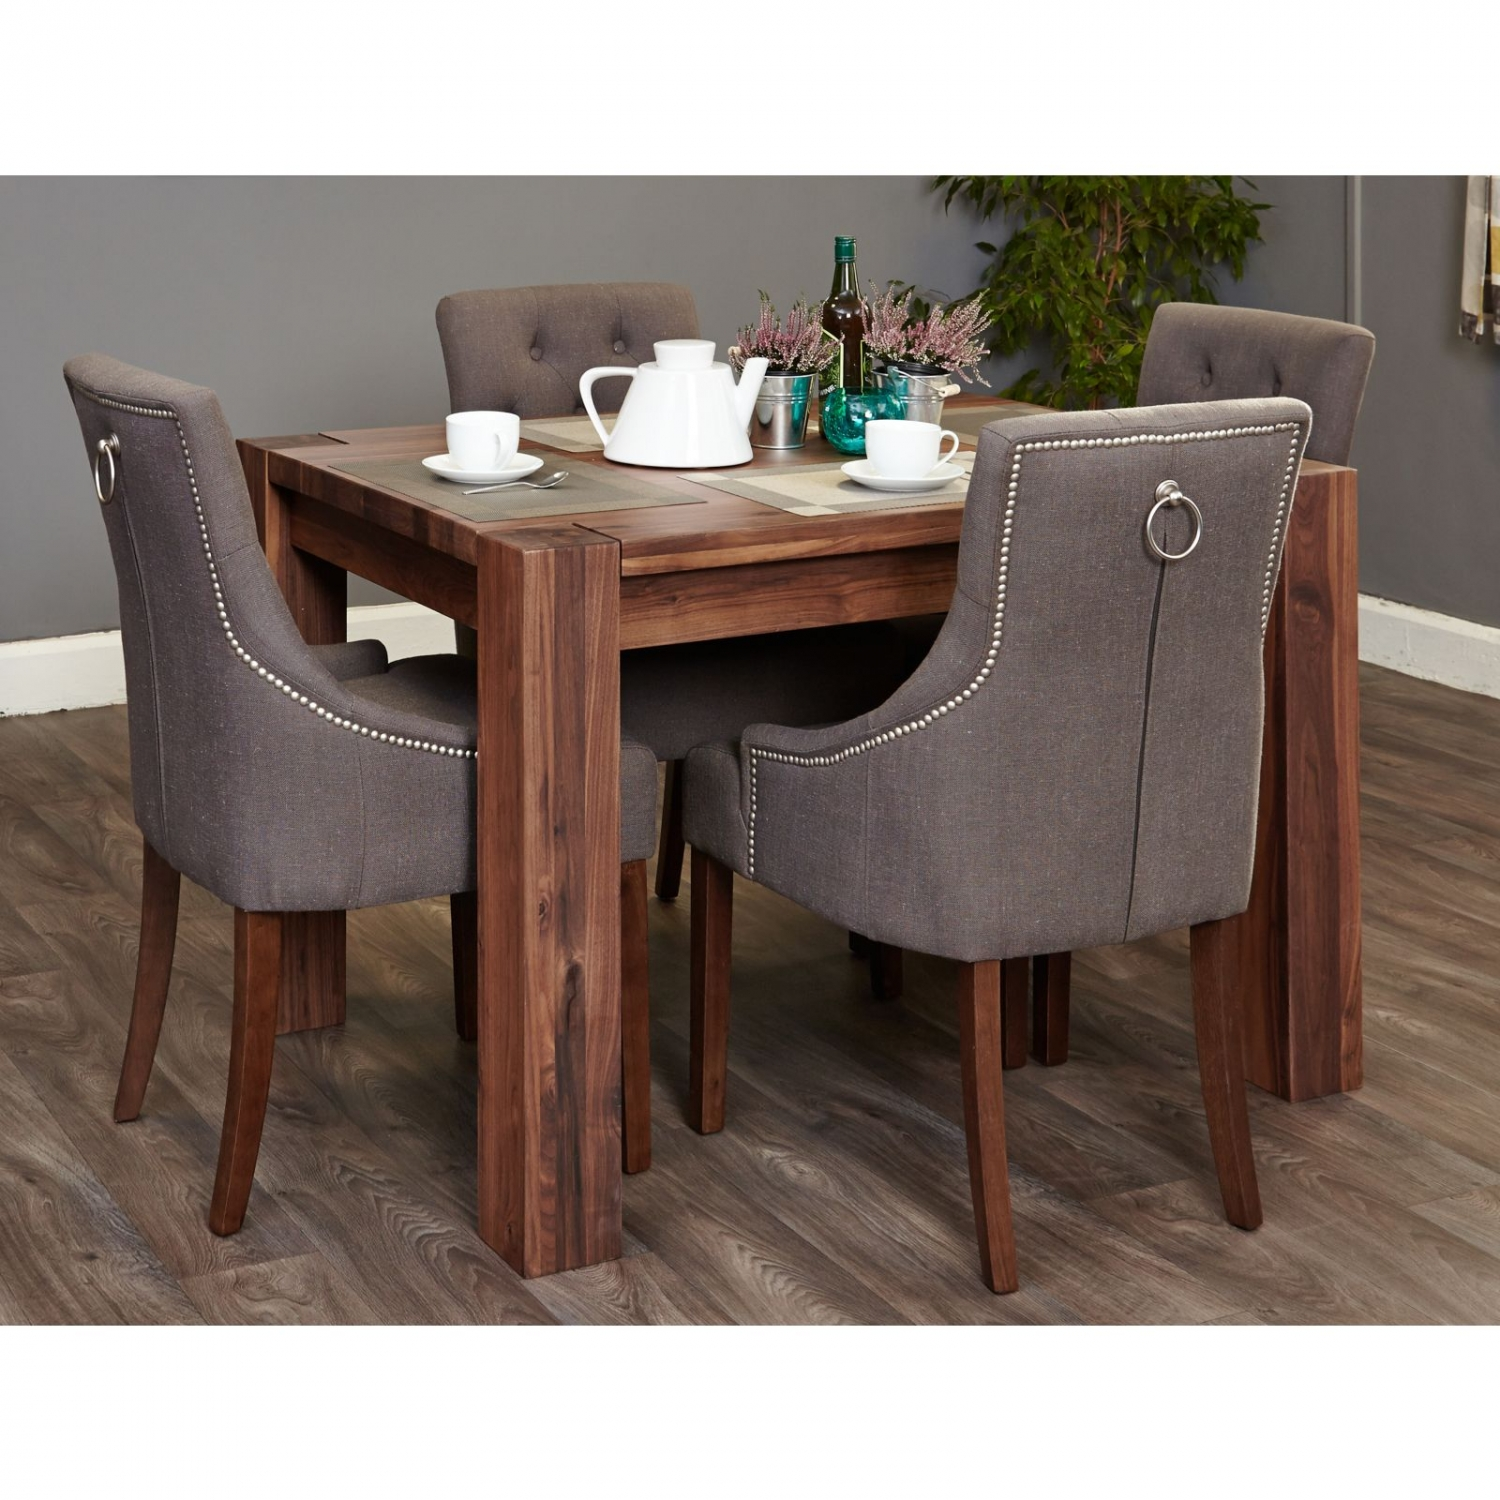 Details About Strathmore Solid Walnut Furniture Small Dining Table And Four Luxury Chairs Set